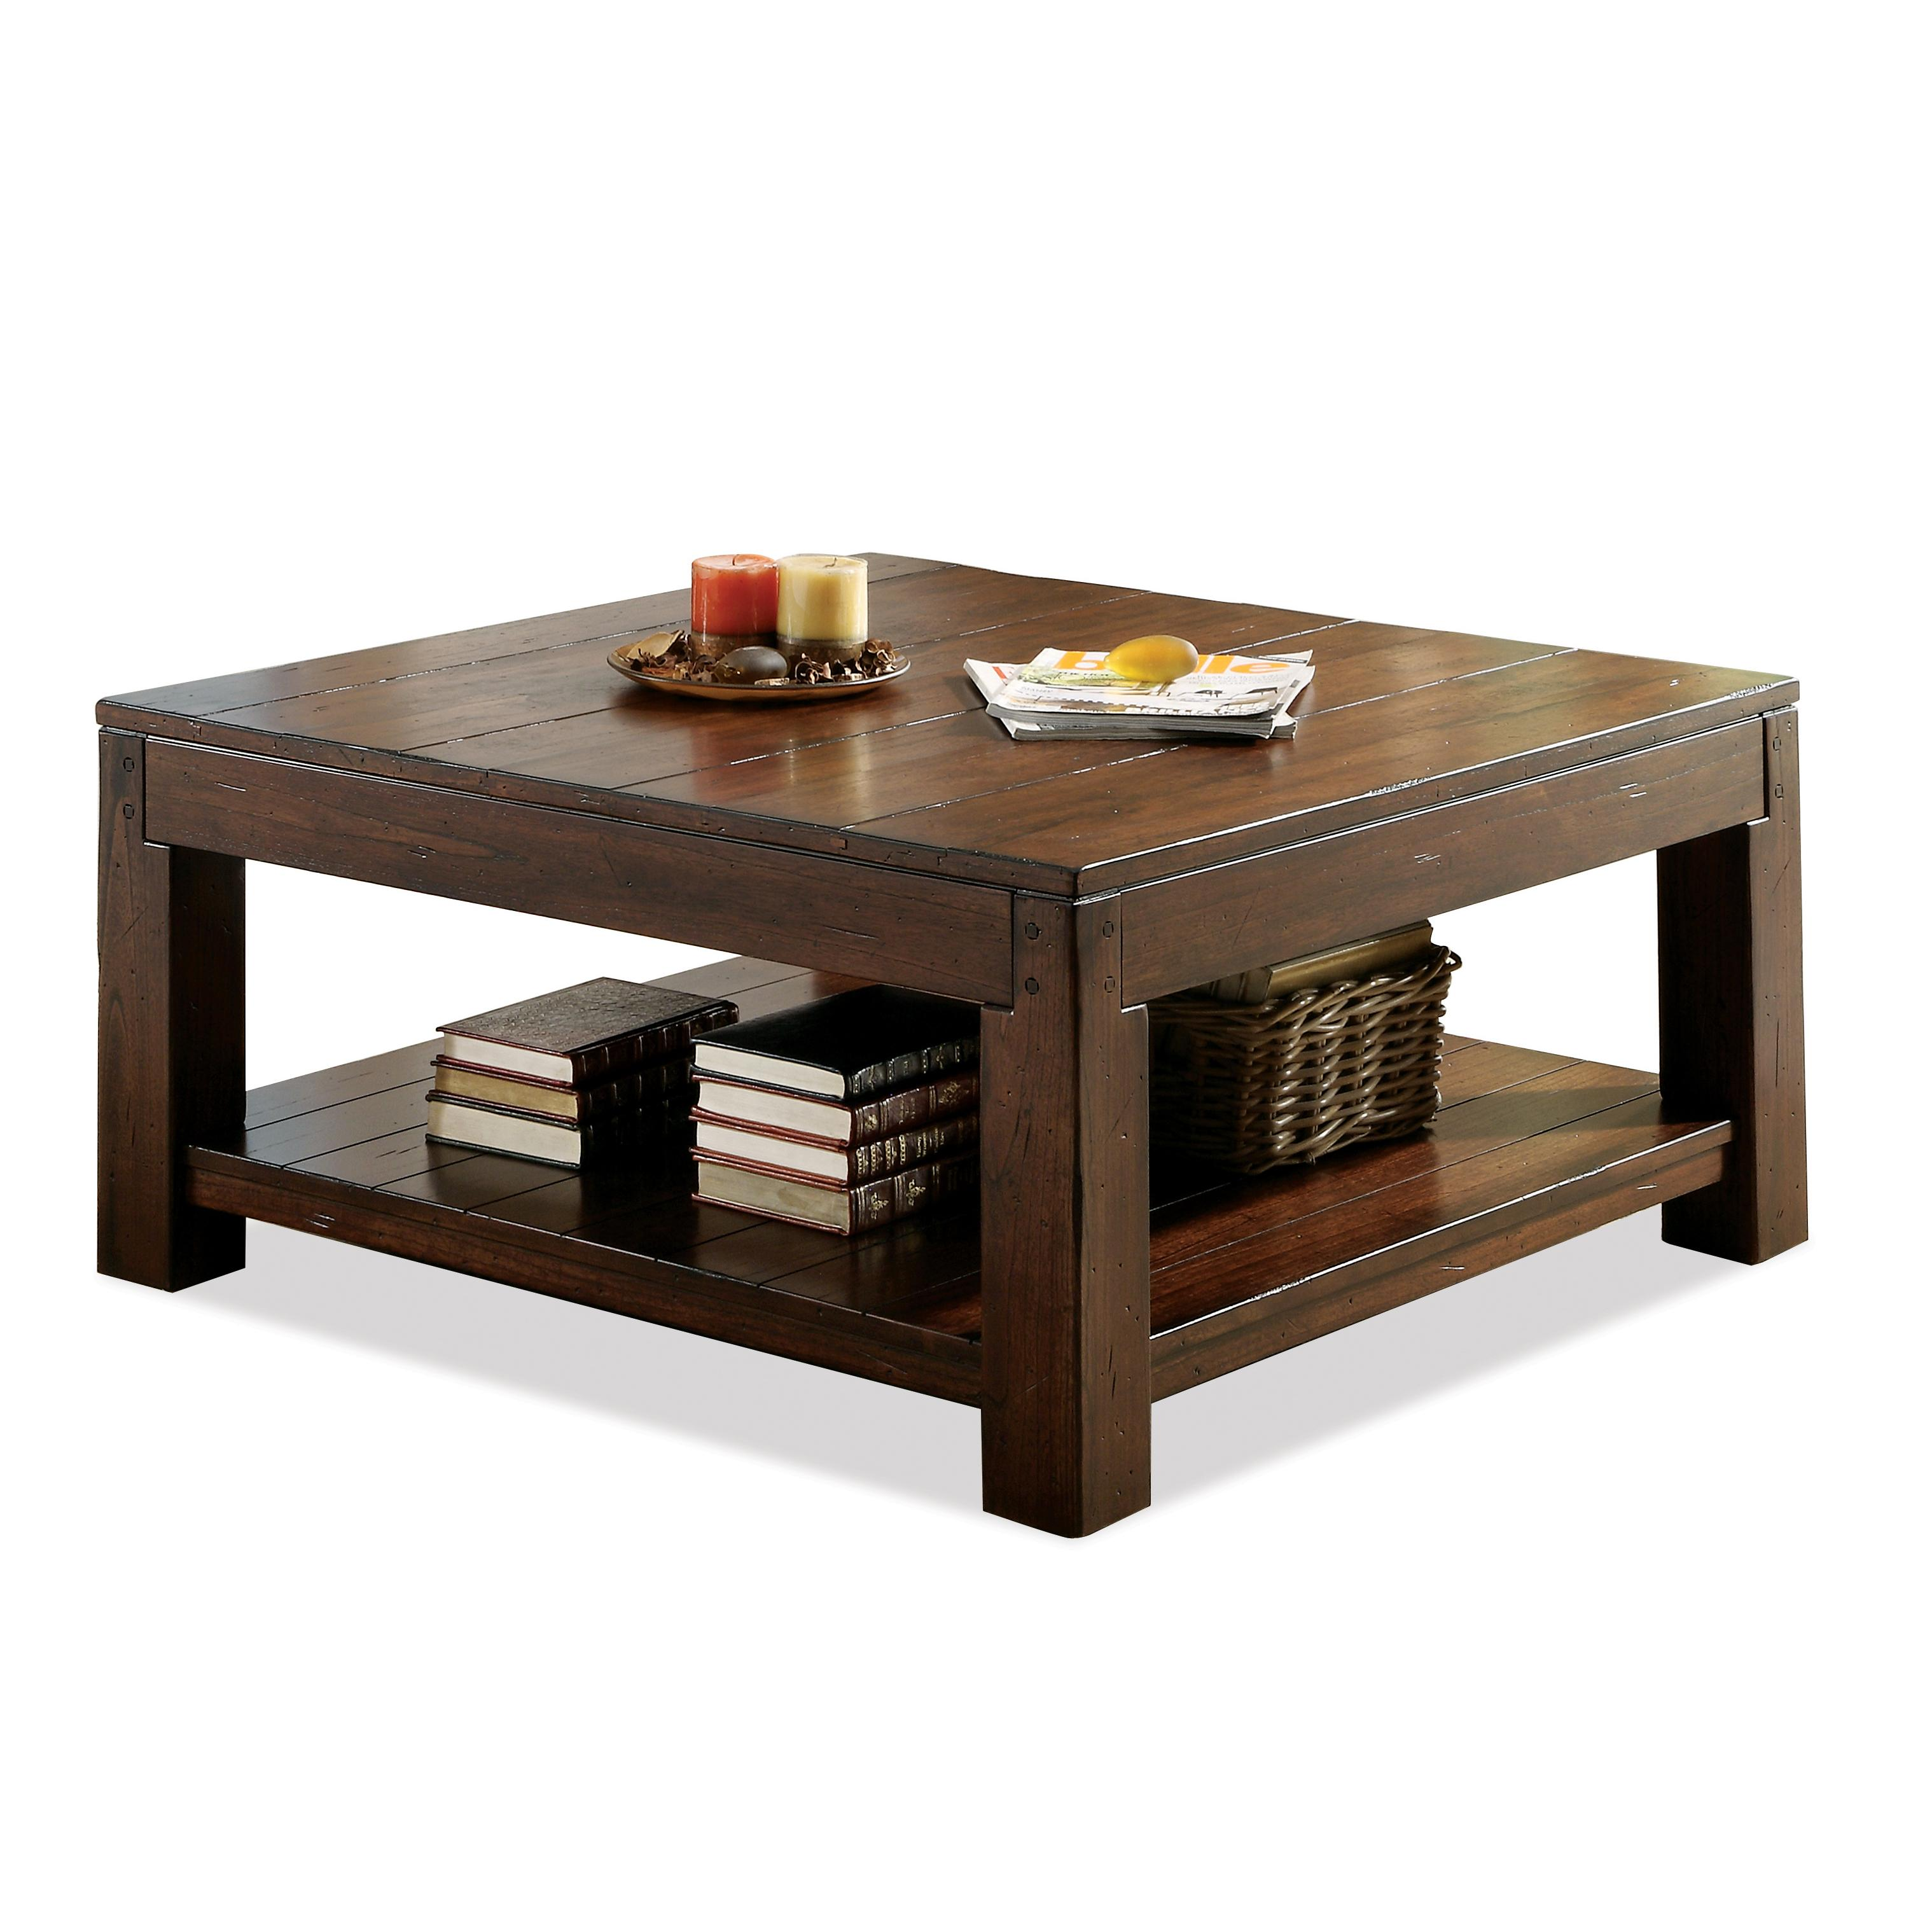 Square Coffee Table With Fixed Bottom Shelf And Block Legs By Riverside Furniture Wolf And